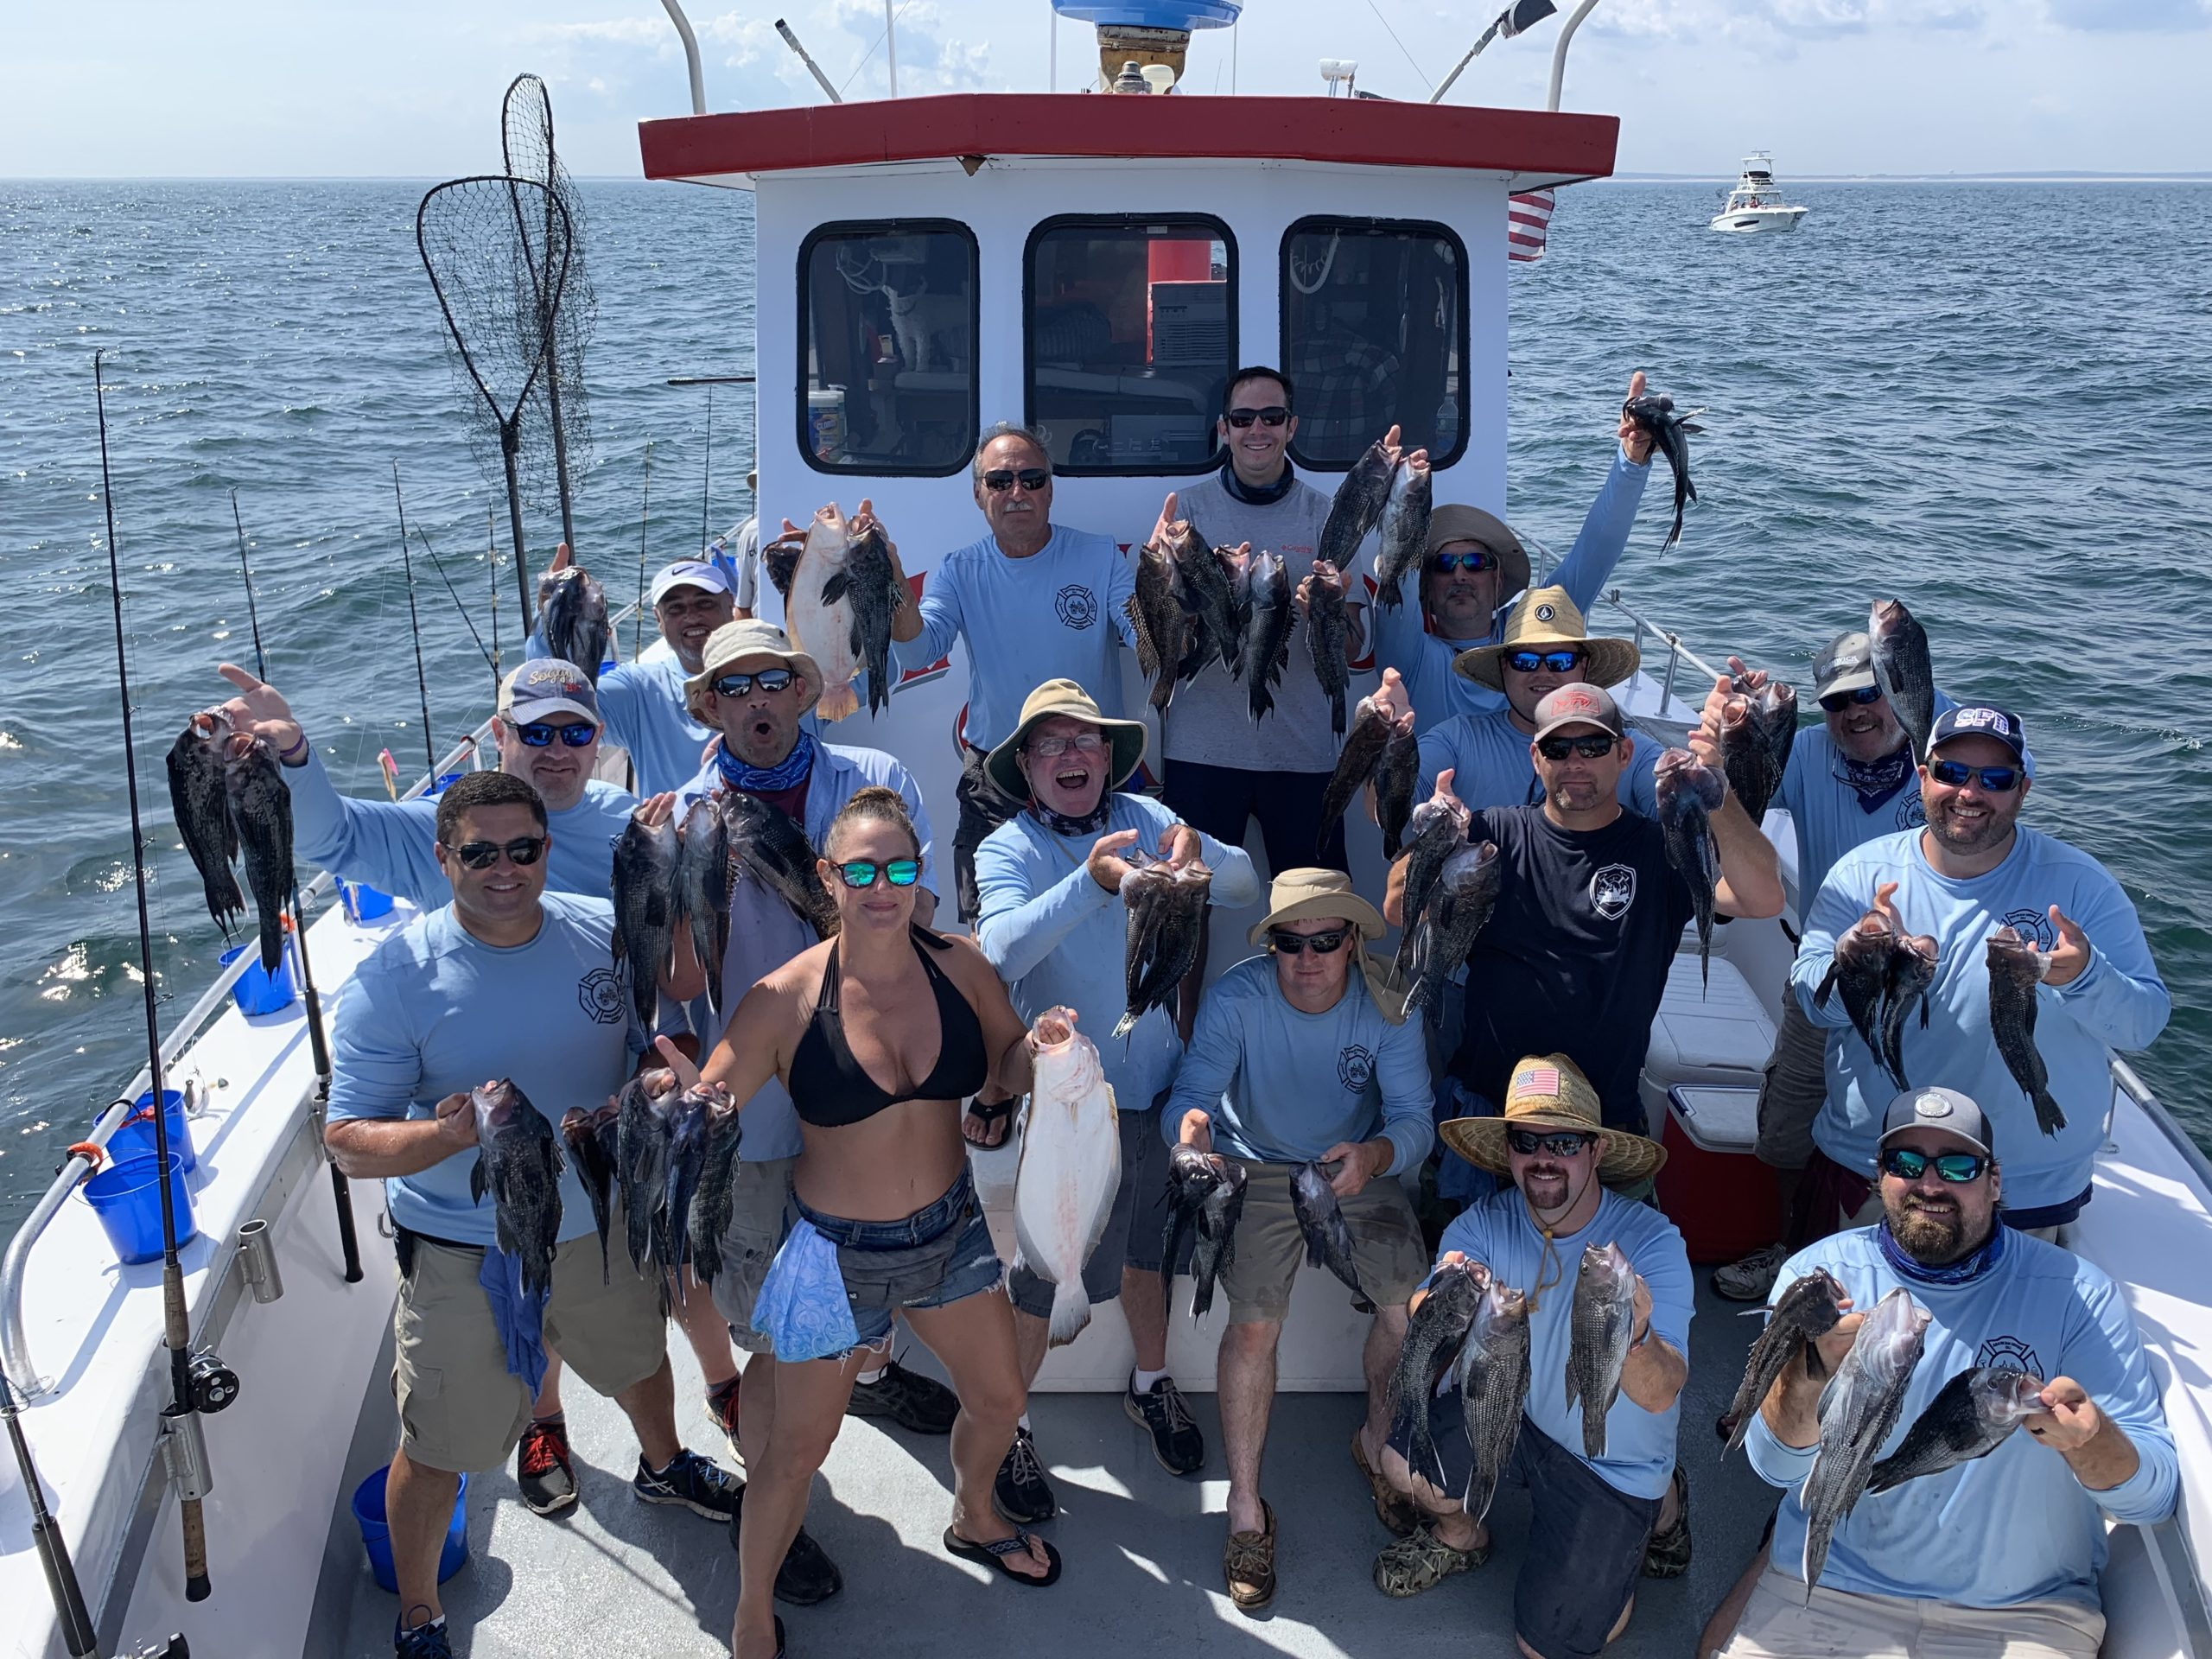 The members of the Southampton Fire Department's Agawam Engine Company held their 11th Annual Richard T. Fowler Memorial Fishing Trip aboard the Hampton Lady on July 25.